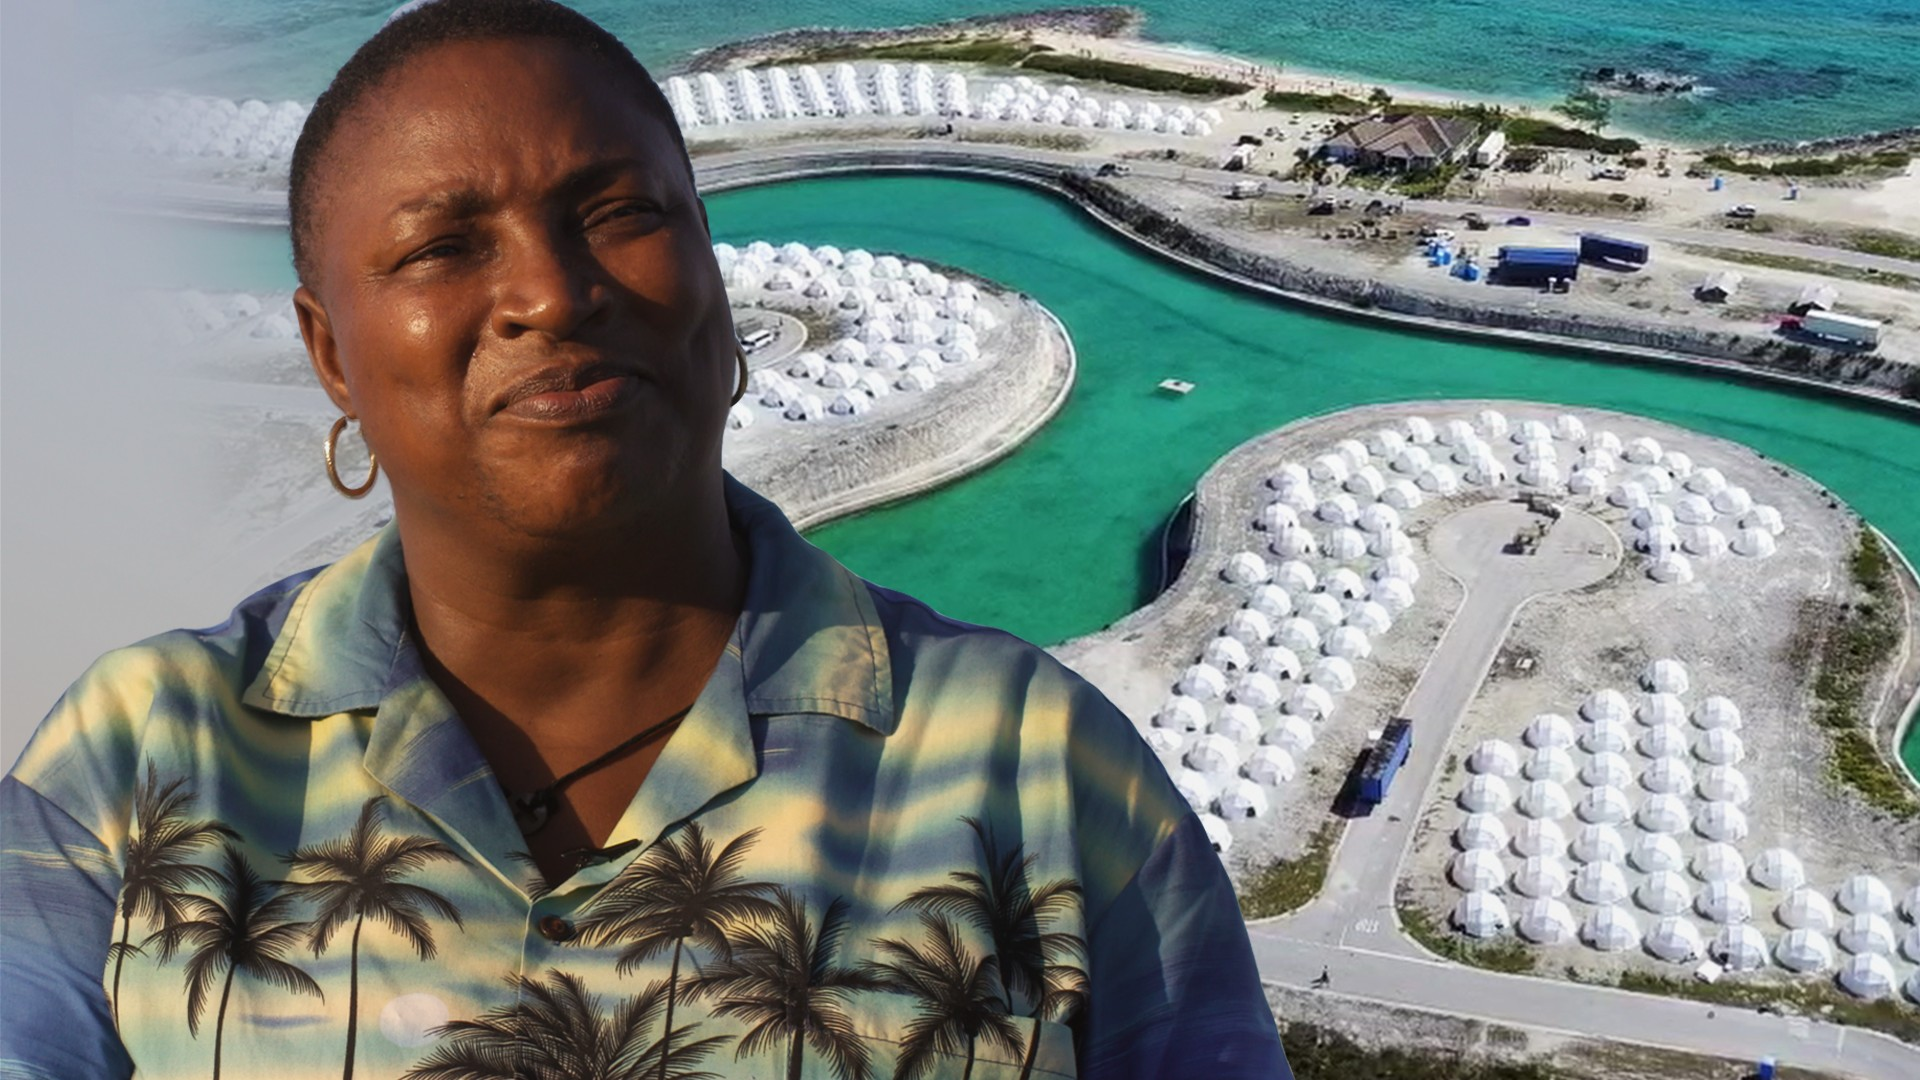 How Fyre Festival Almost Ruined My Life - Twice